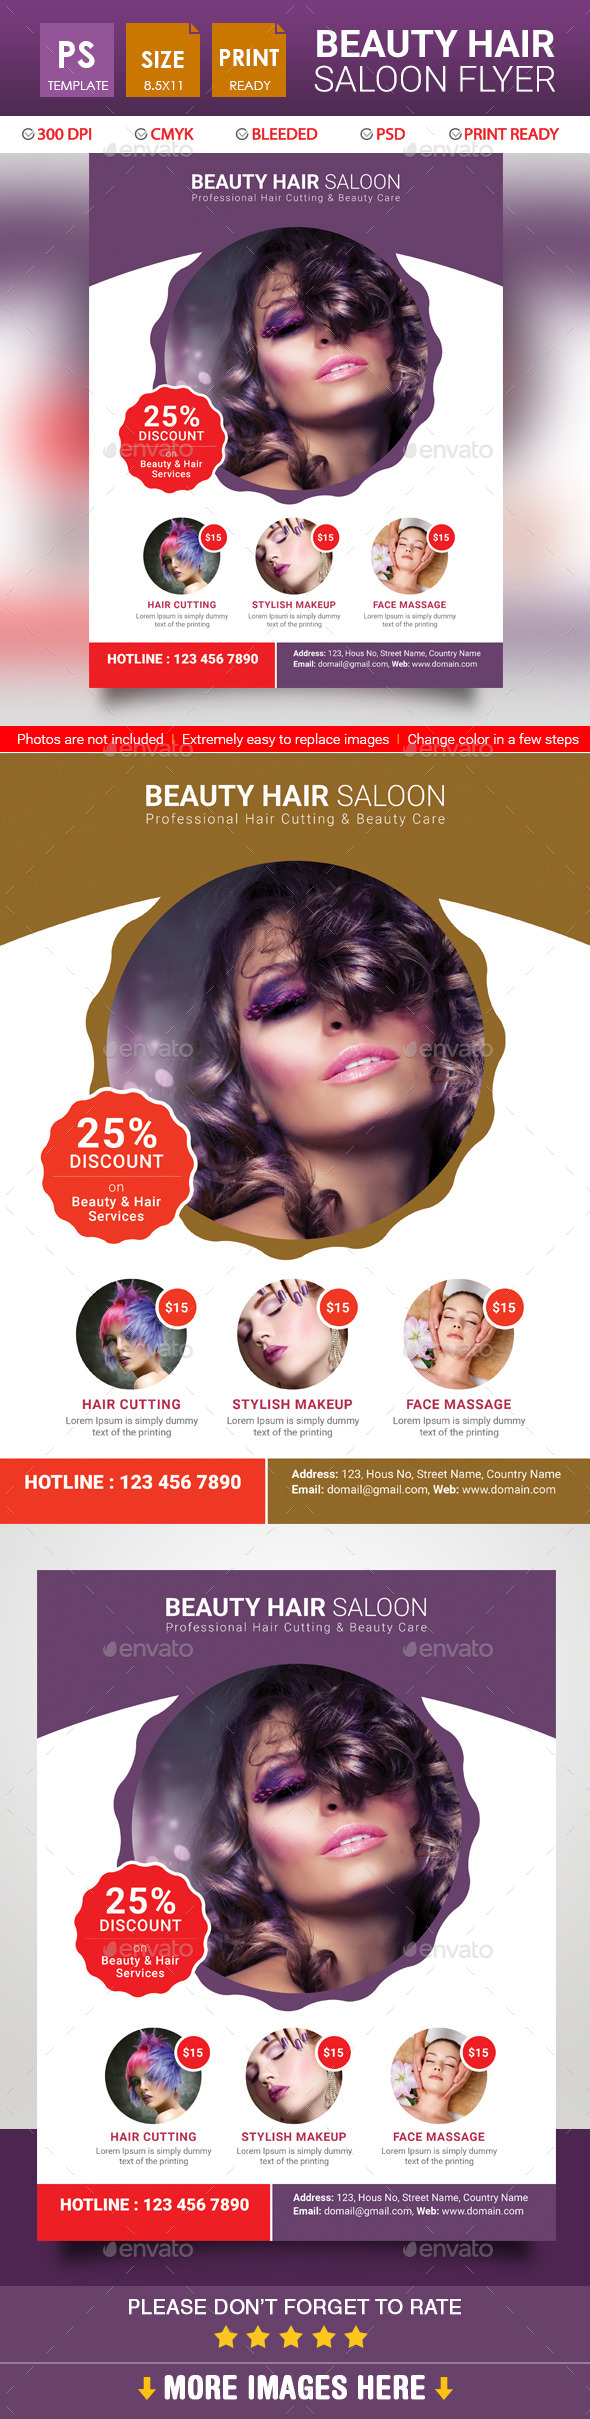 Beauty Hair Saloon Flyer - Corporate Business Cards